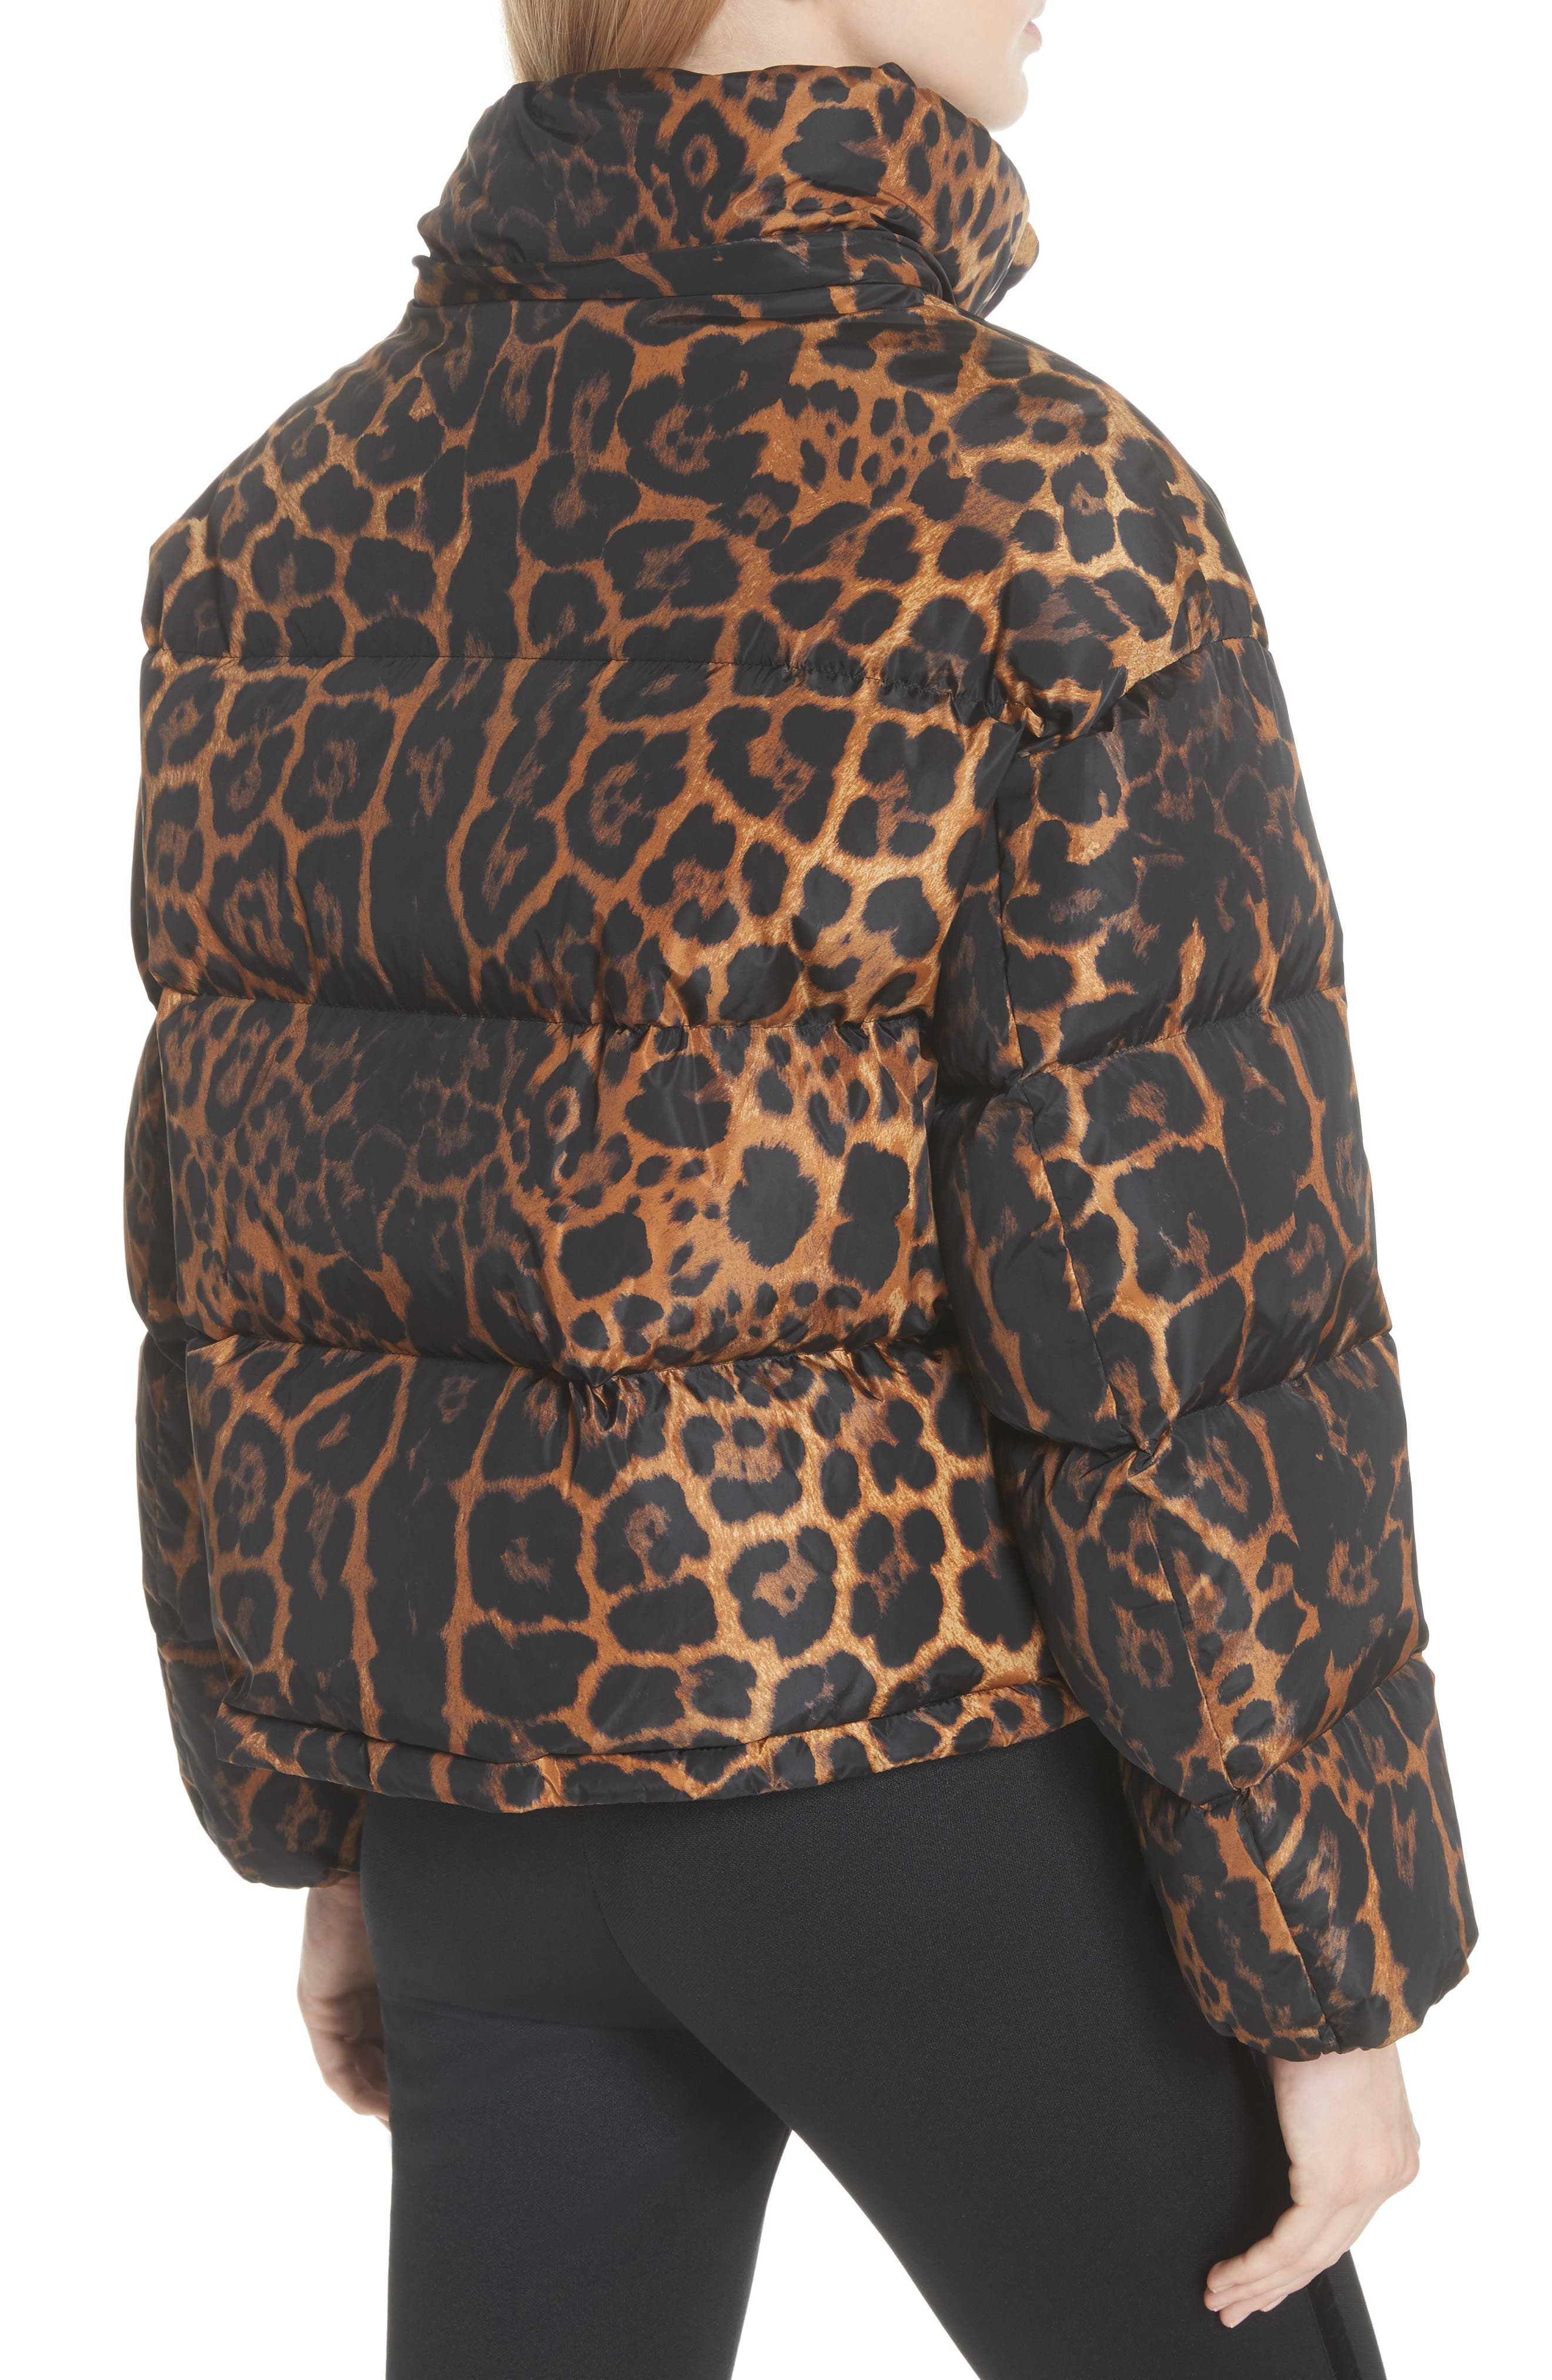 MONCLER, Caille Leopard Print Down Puffer Jacket, Alternate thumbnail 2, color, 240